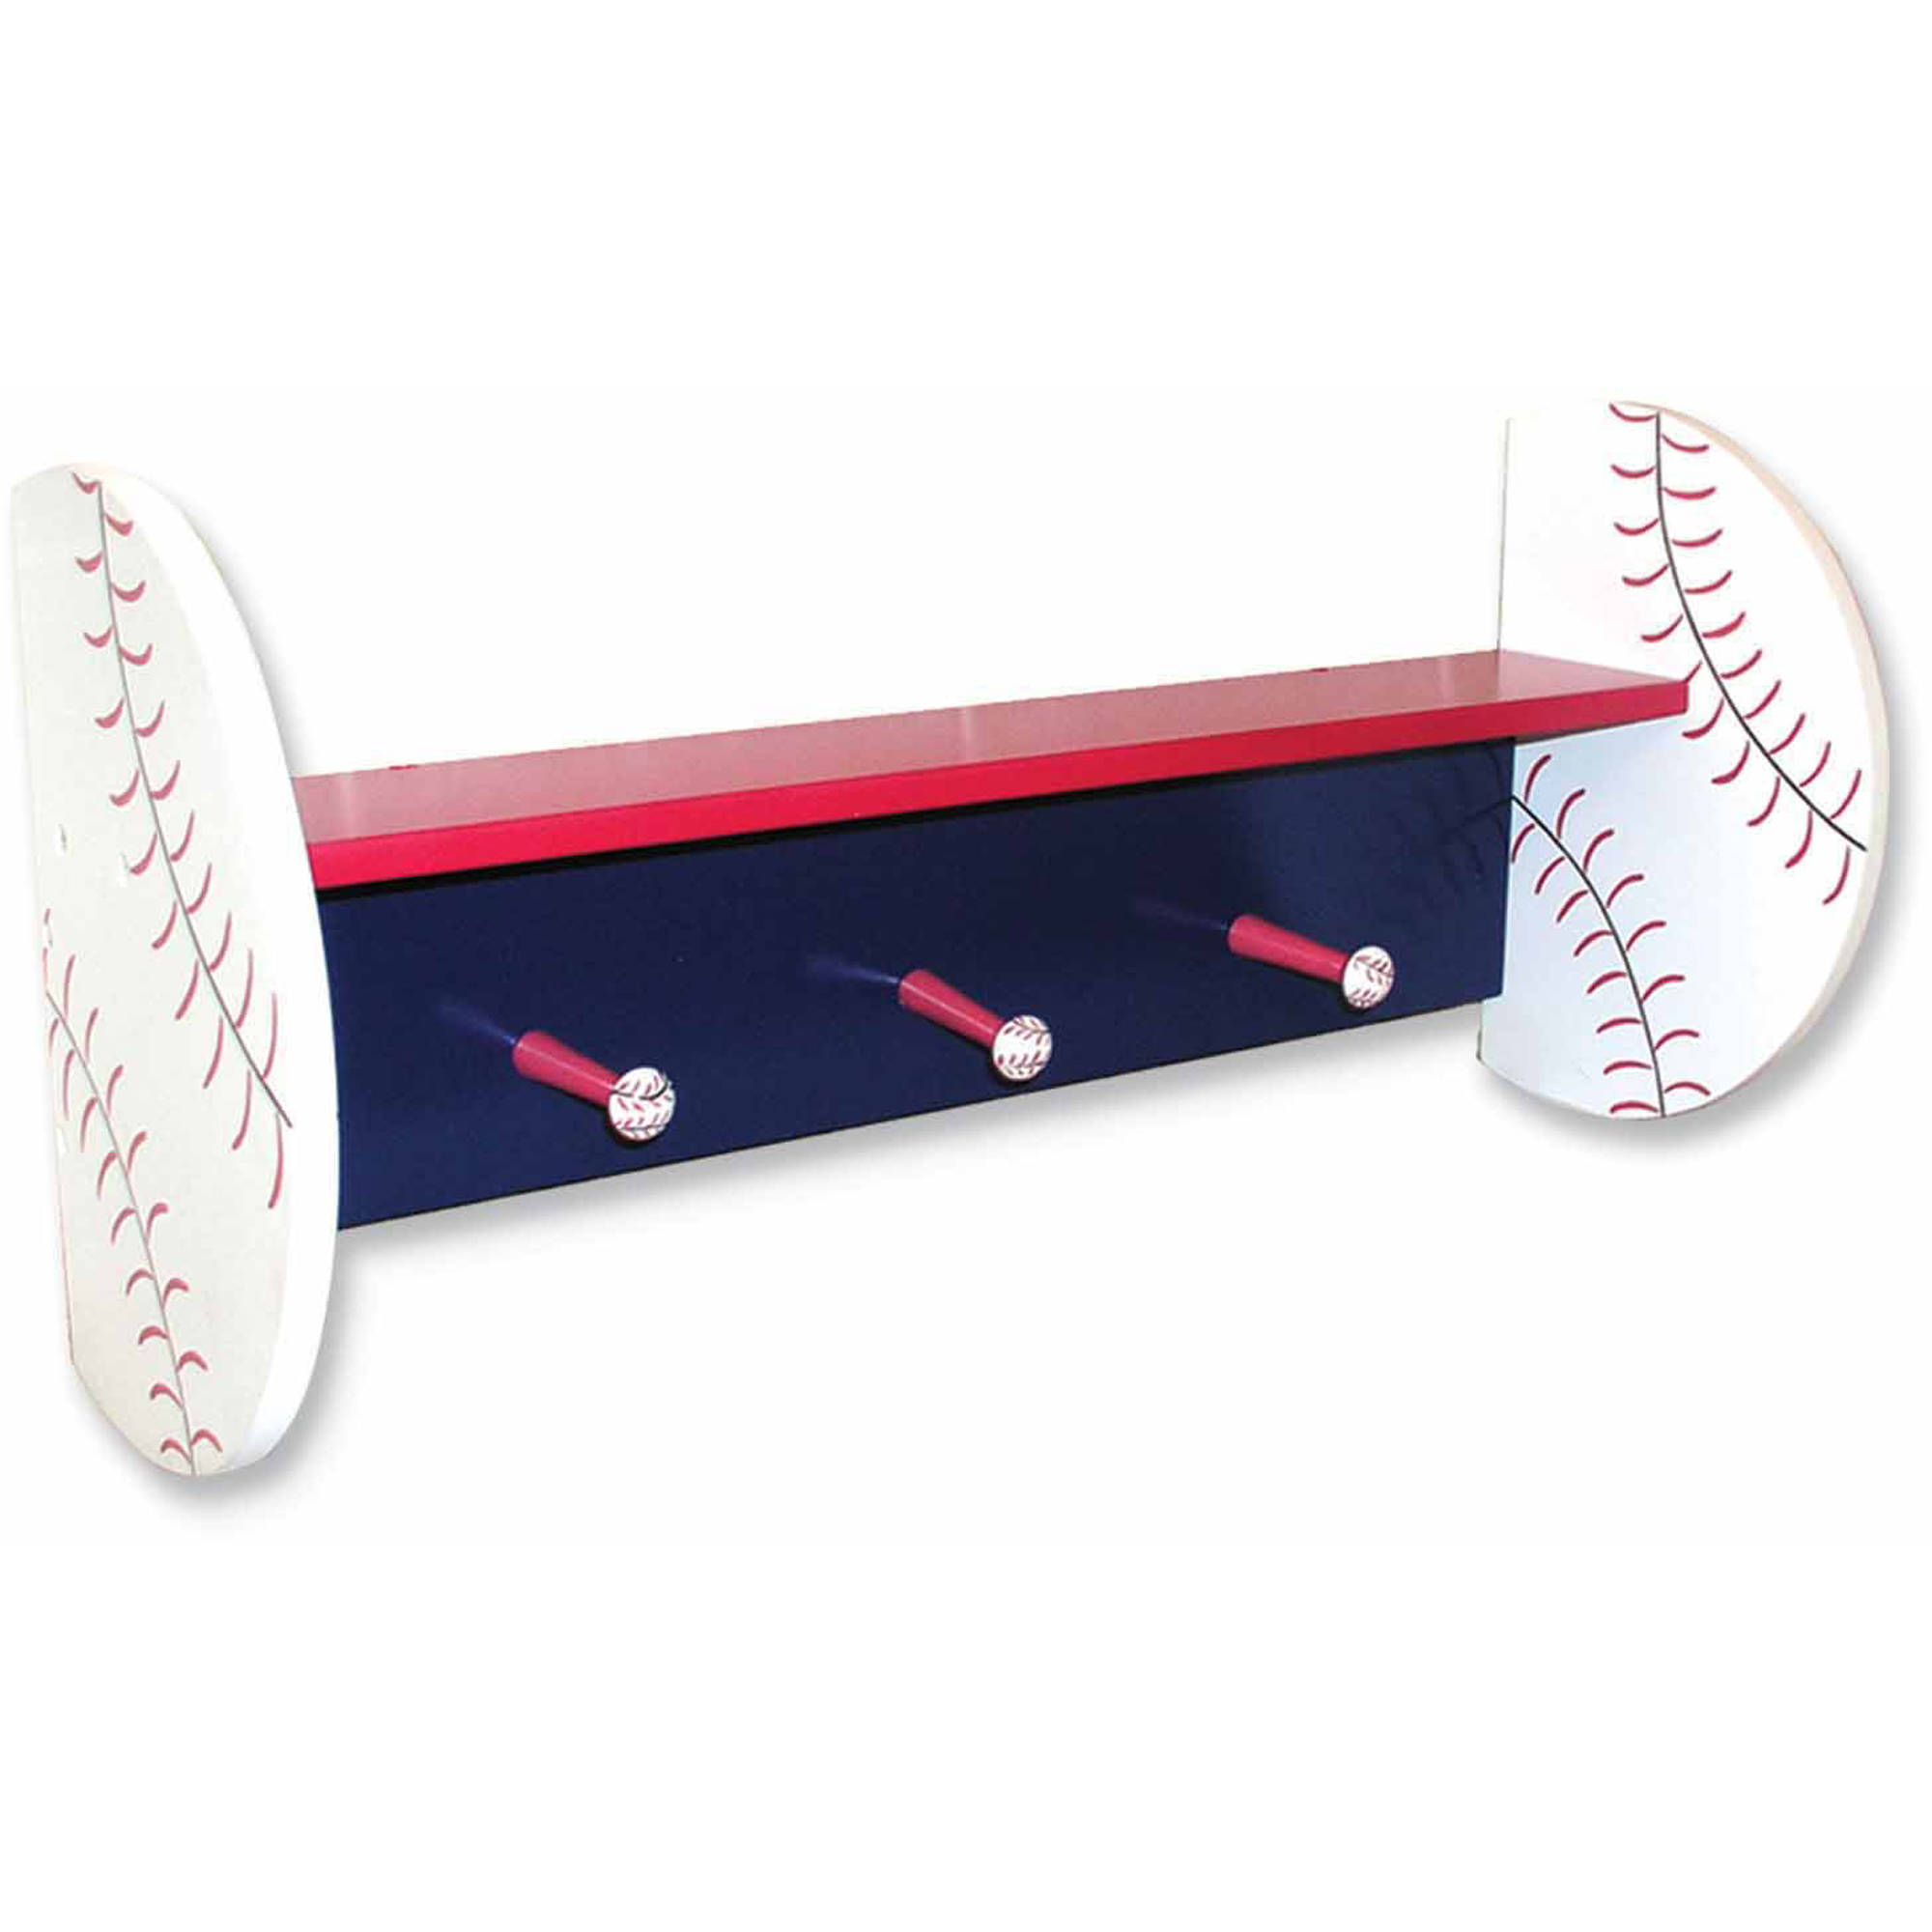 Trend Lab Baseball Shelf with Pegs